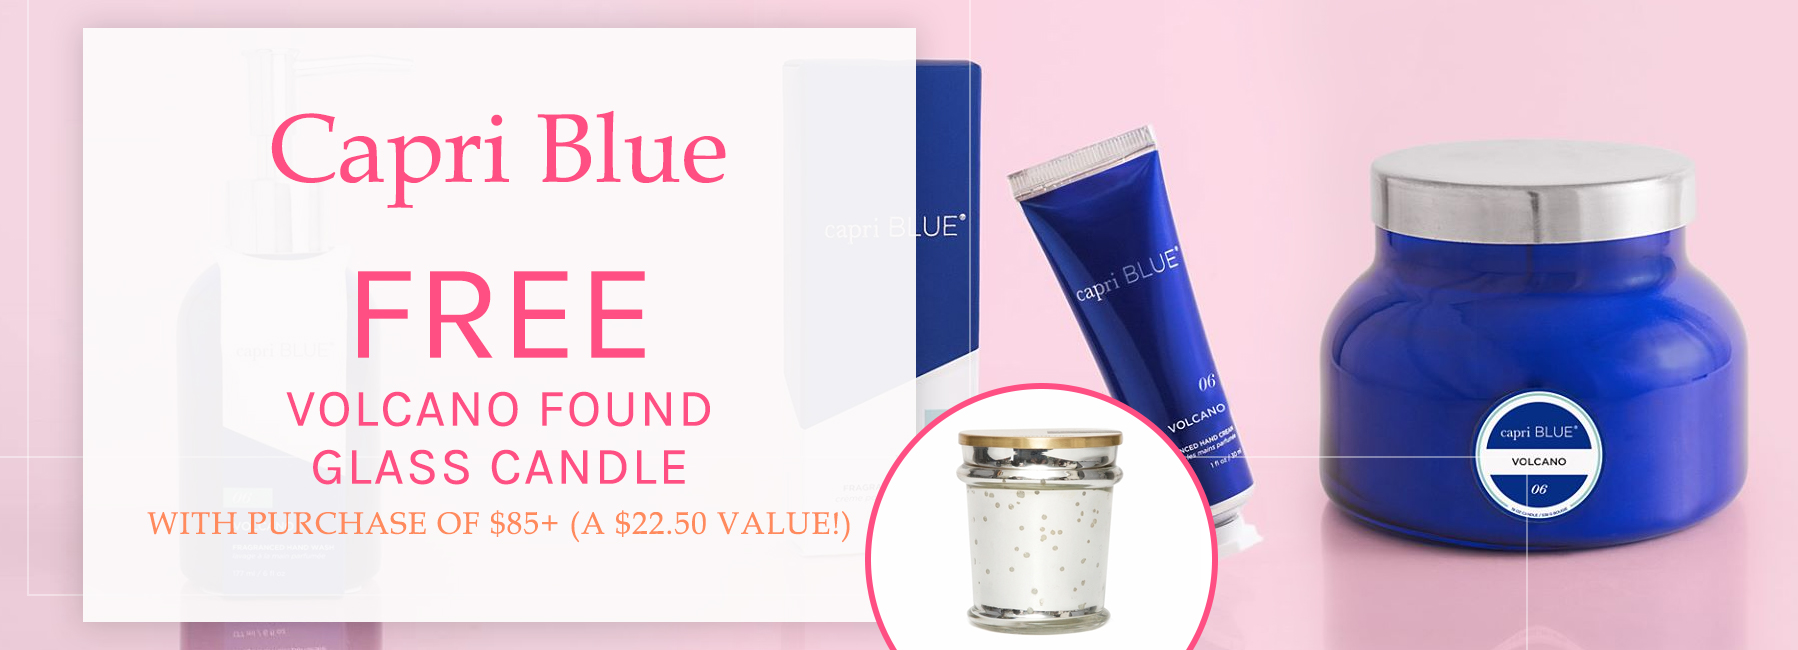 Capri Blue - FREE Volcano Found Glass Candle - with Purchase of $85+ - A $22.50 Value*